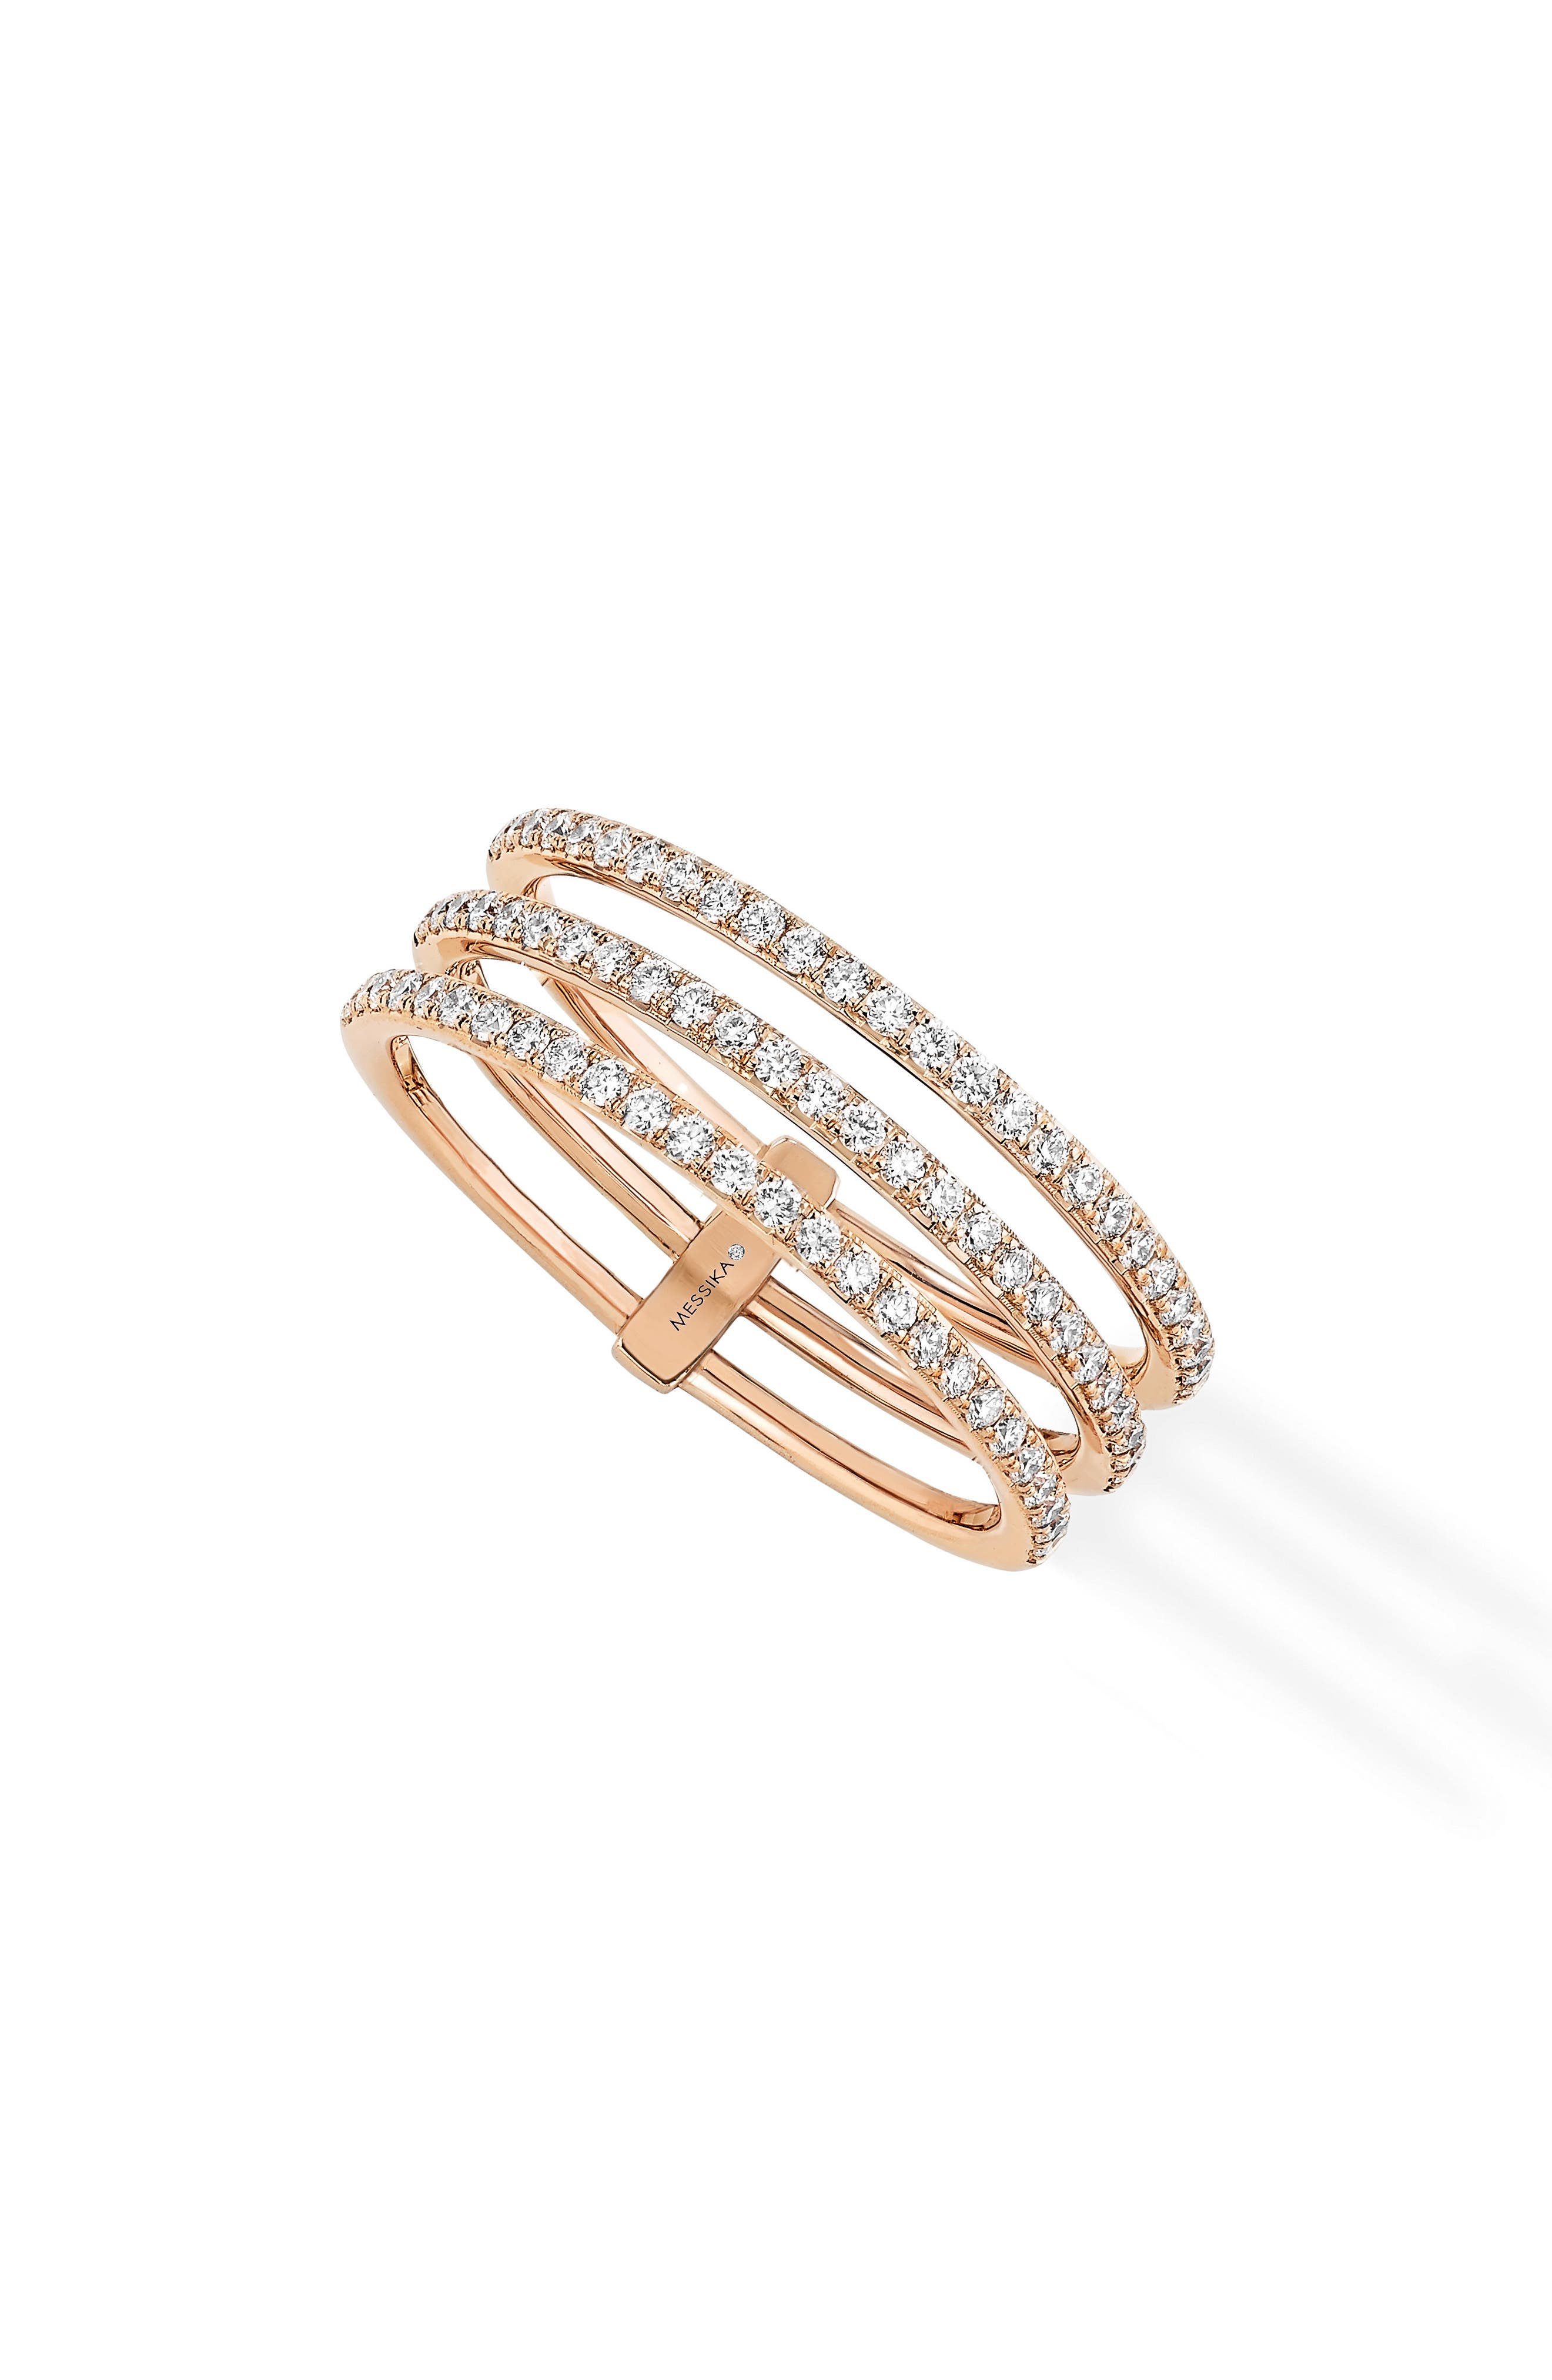 3-Row Diamond Ring,                         Main,                         color, Rose Gold